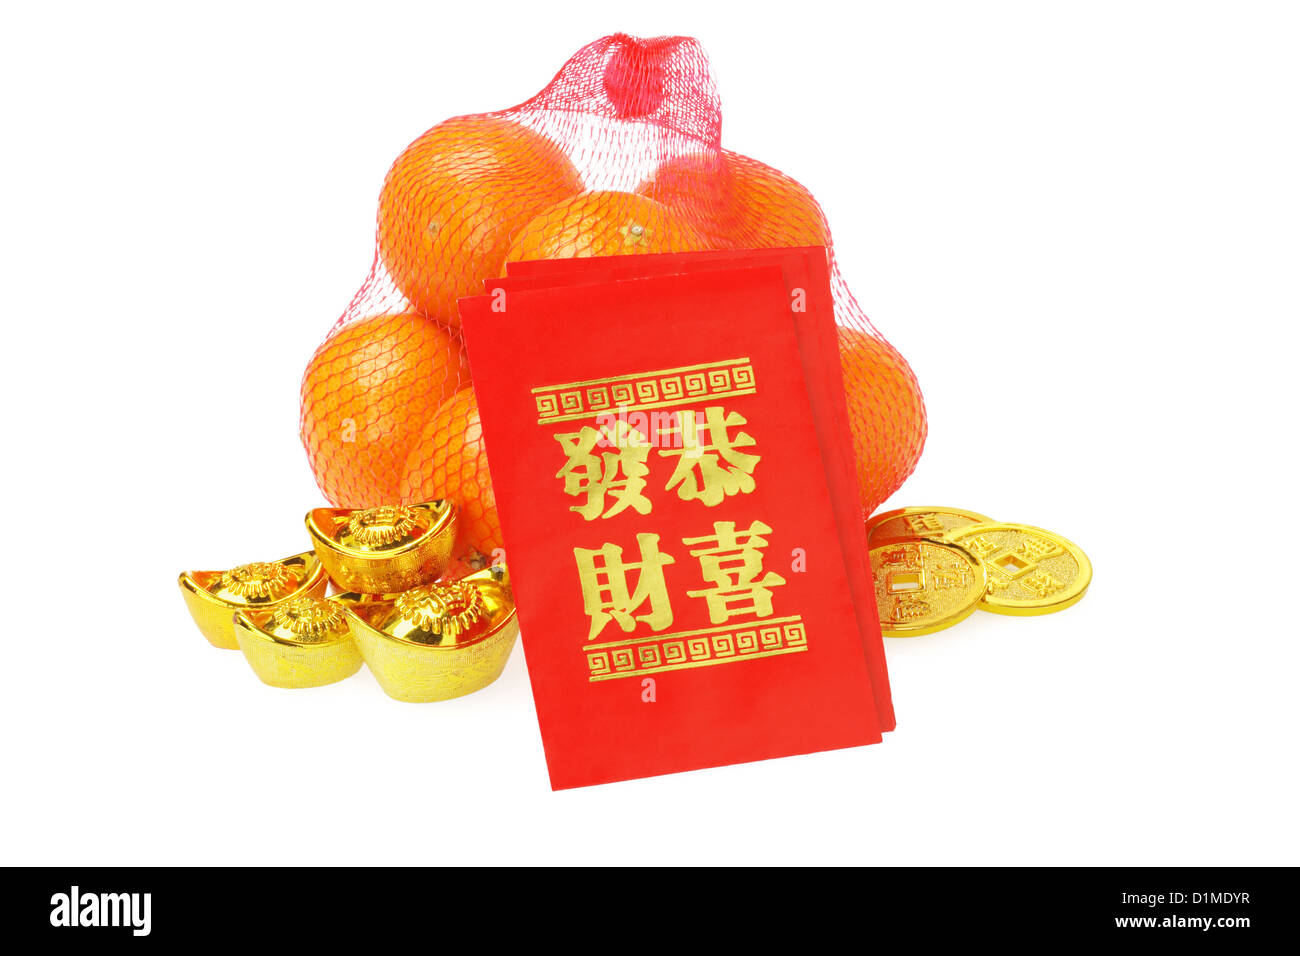 Chinese New Year Ornaments and Oranges on White Background - Stock Image